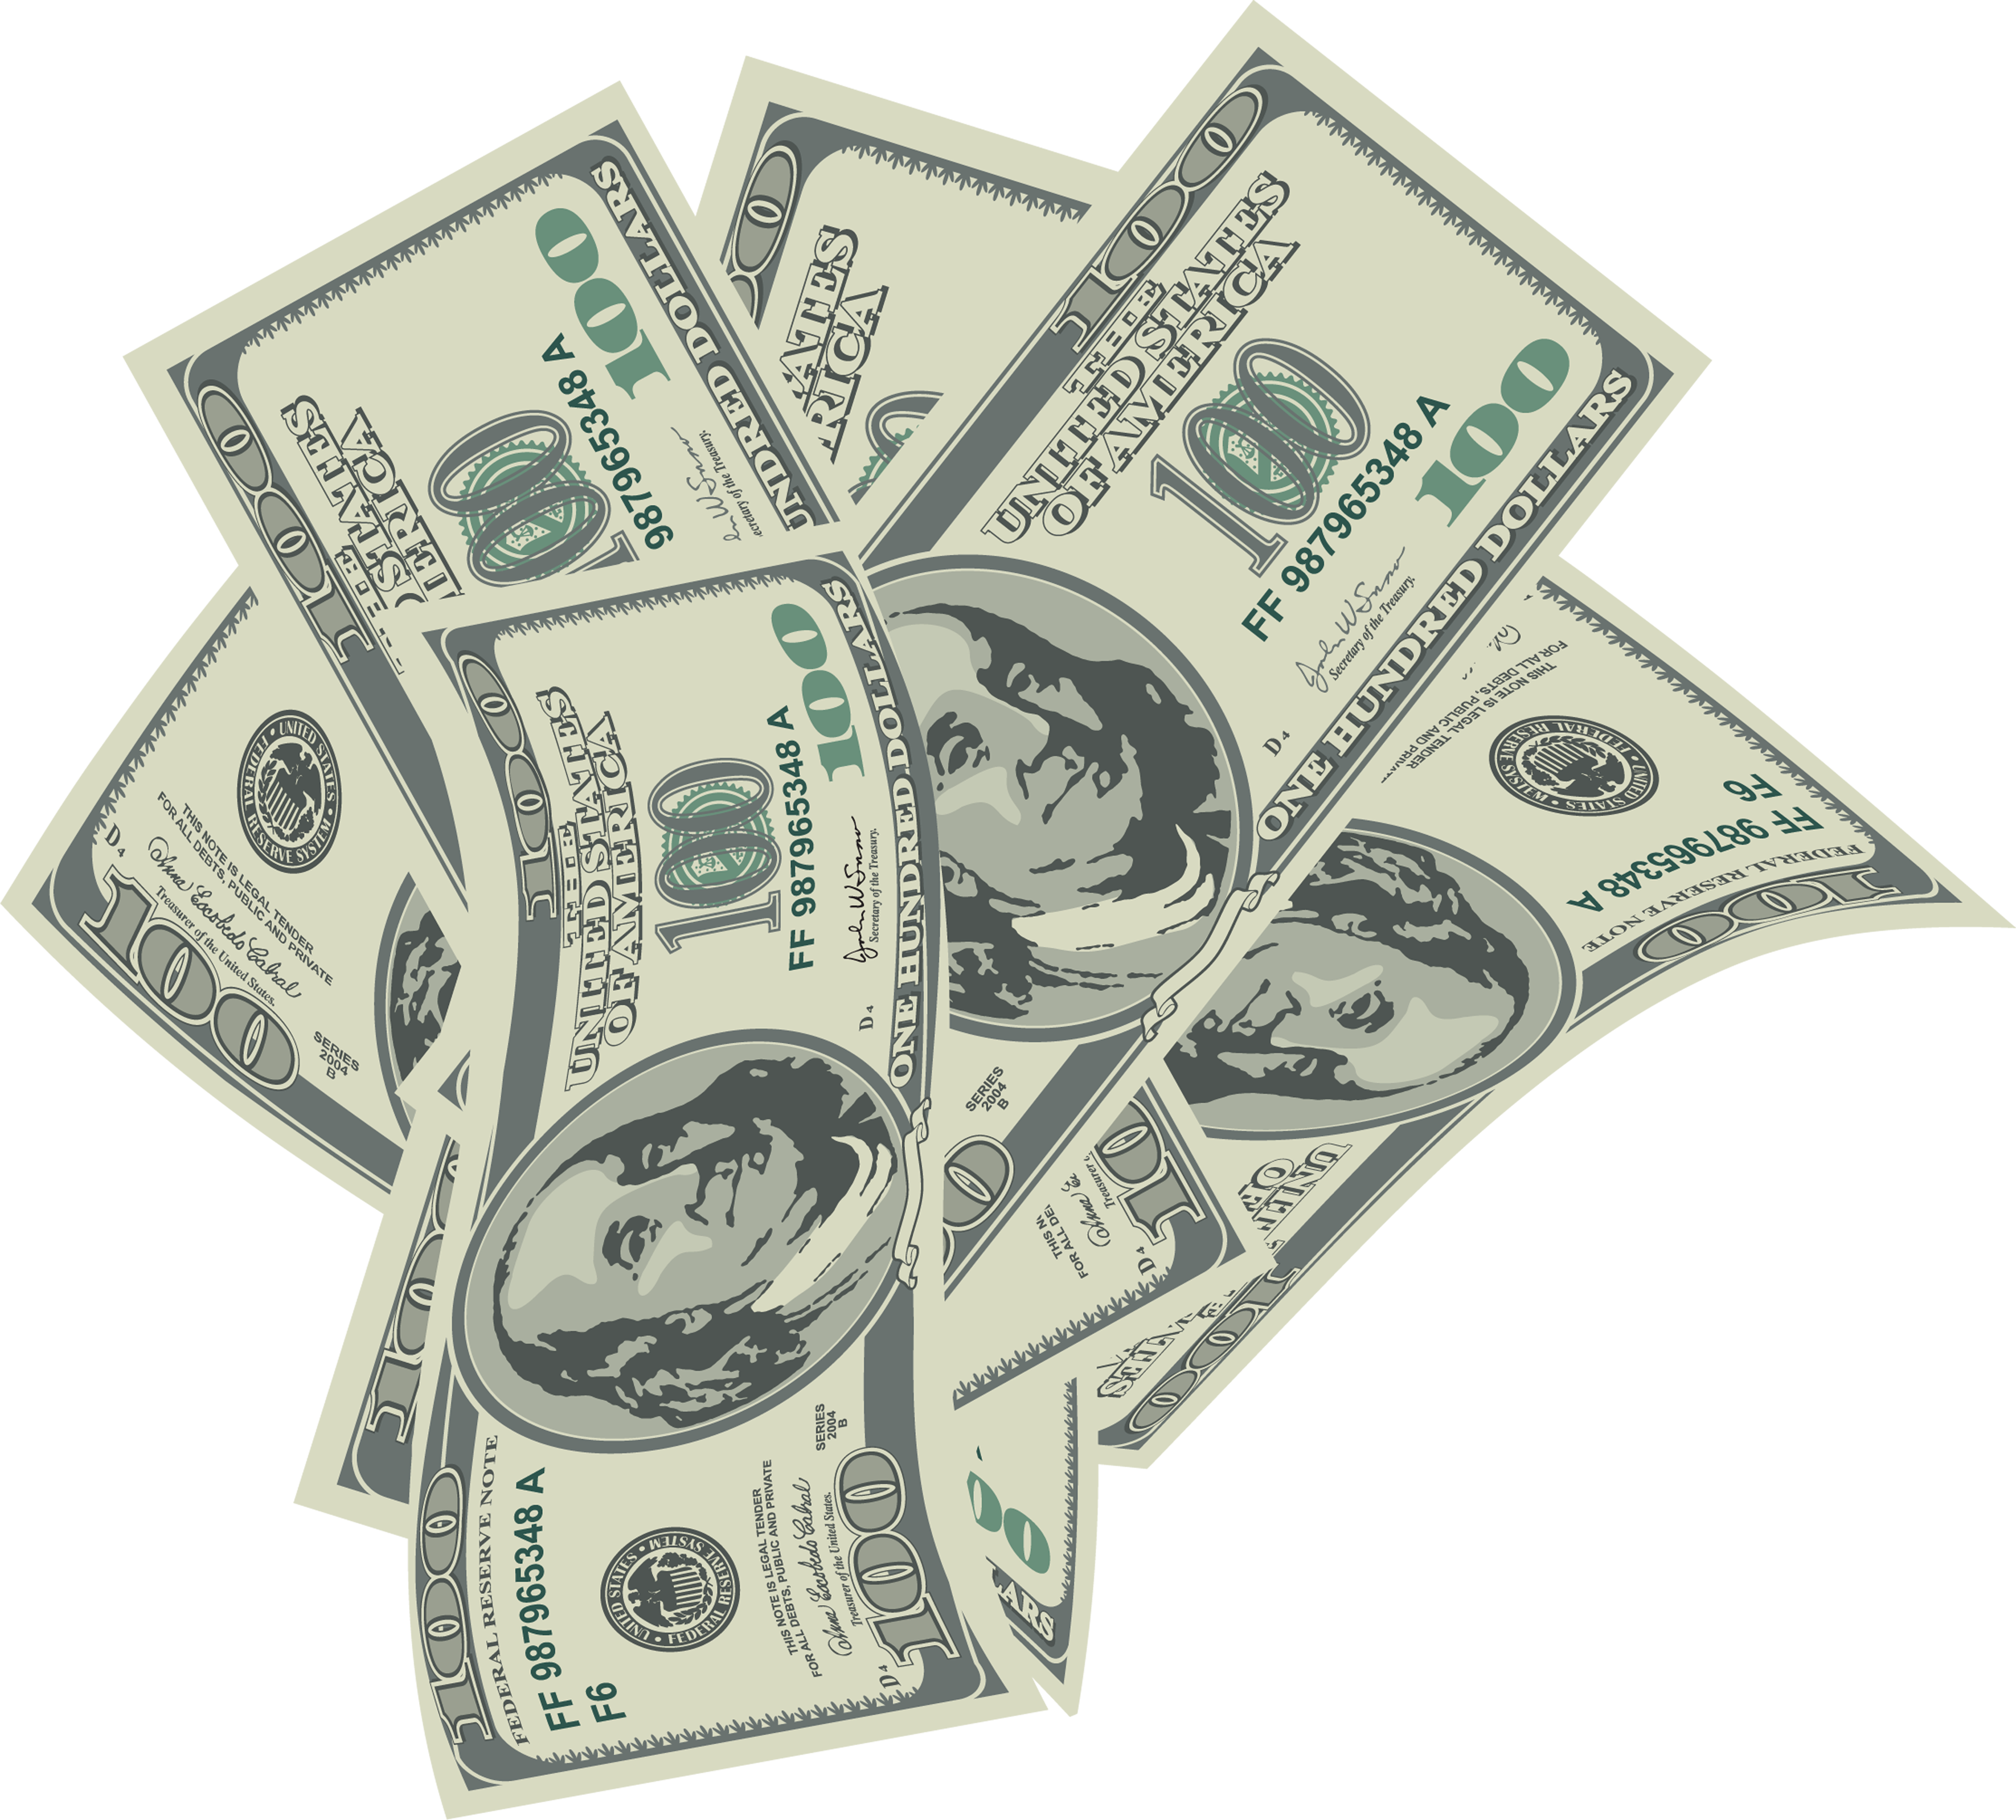 Large dollars bills png. Raffle clipart transparent background